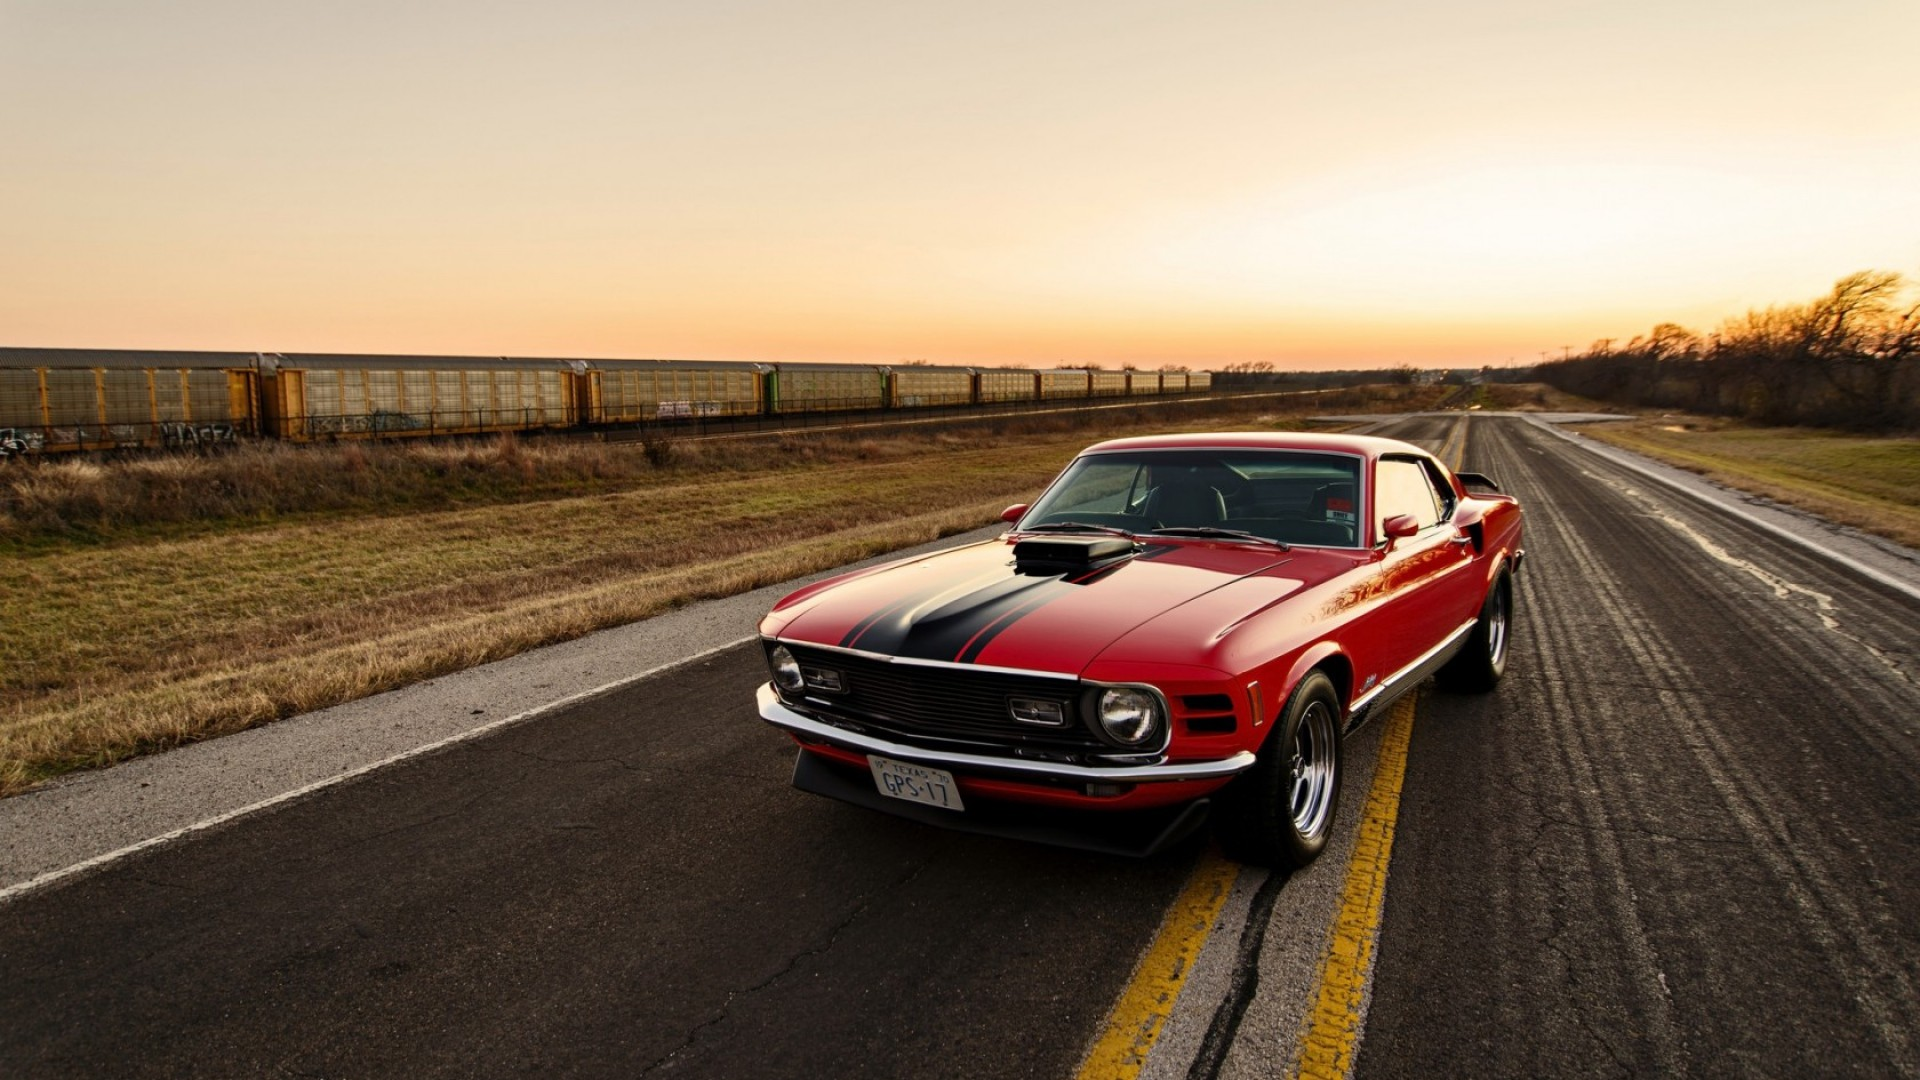 Boss Trans Am Mecum likewise F A F Fb E F C Ee D as well Boss Mecum Preview likewise Modern Muscle Cars additionally Shelby Gt Widebody Bj. on 1970 ford mustang boss snake